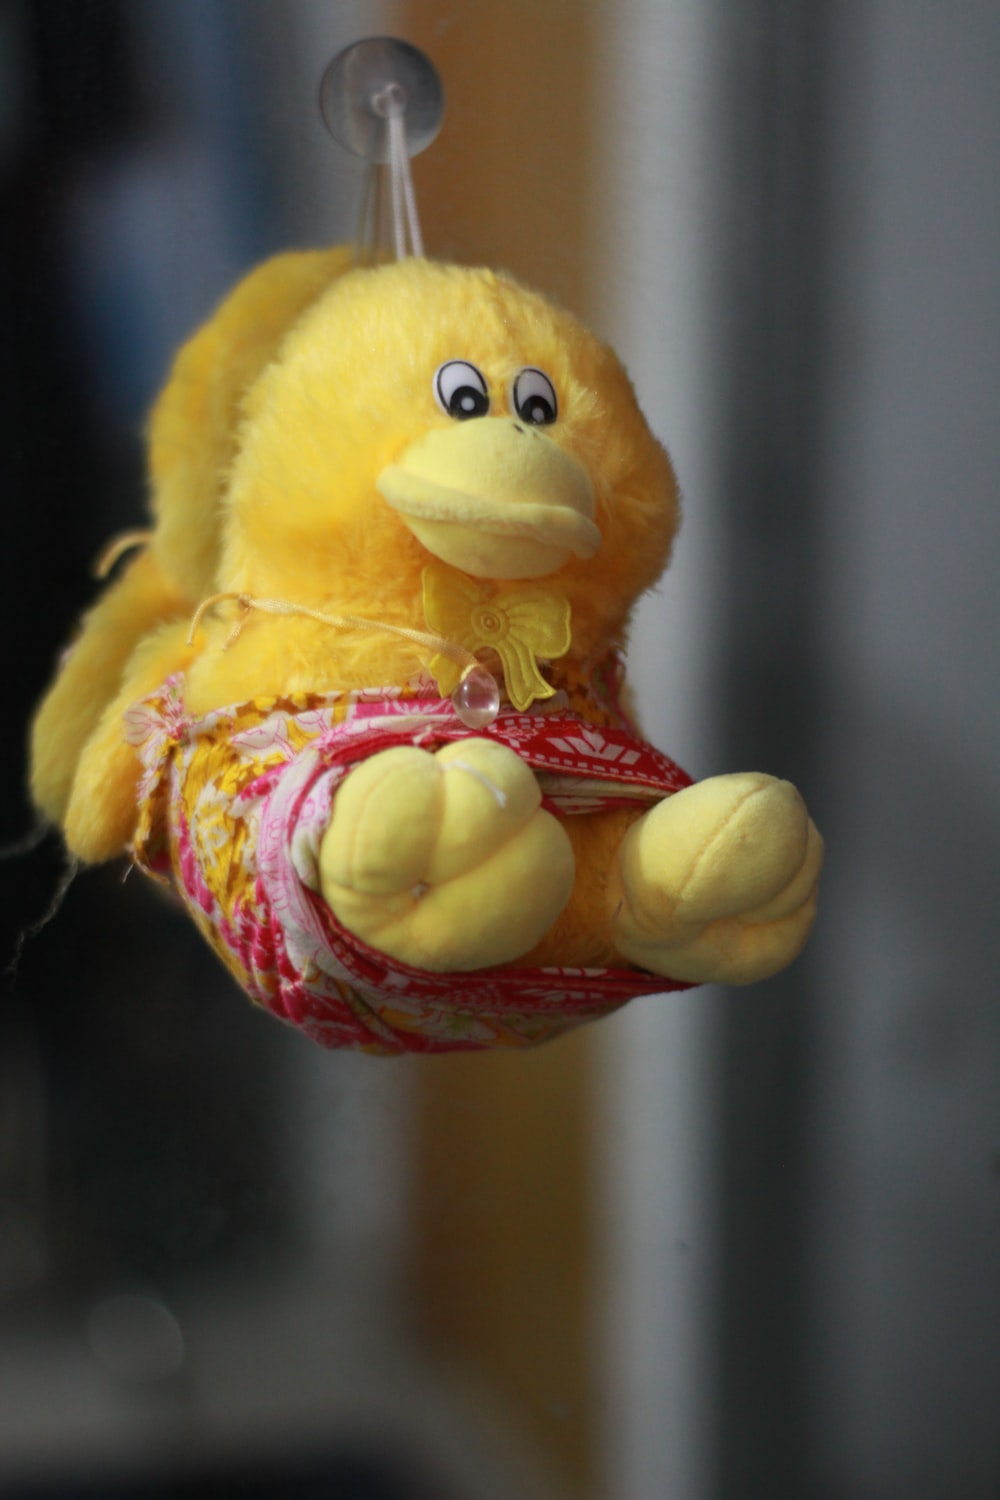 yellow and red duck plush toy